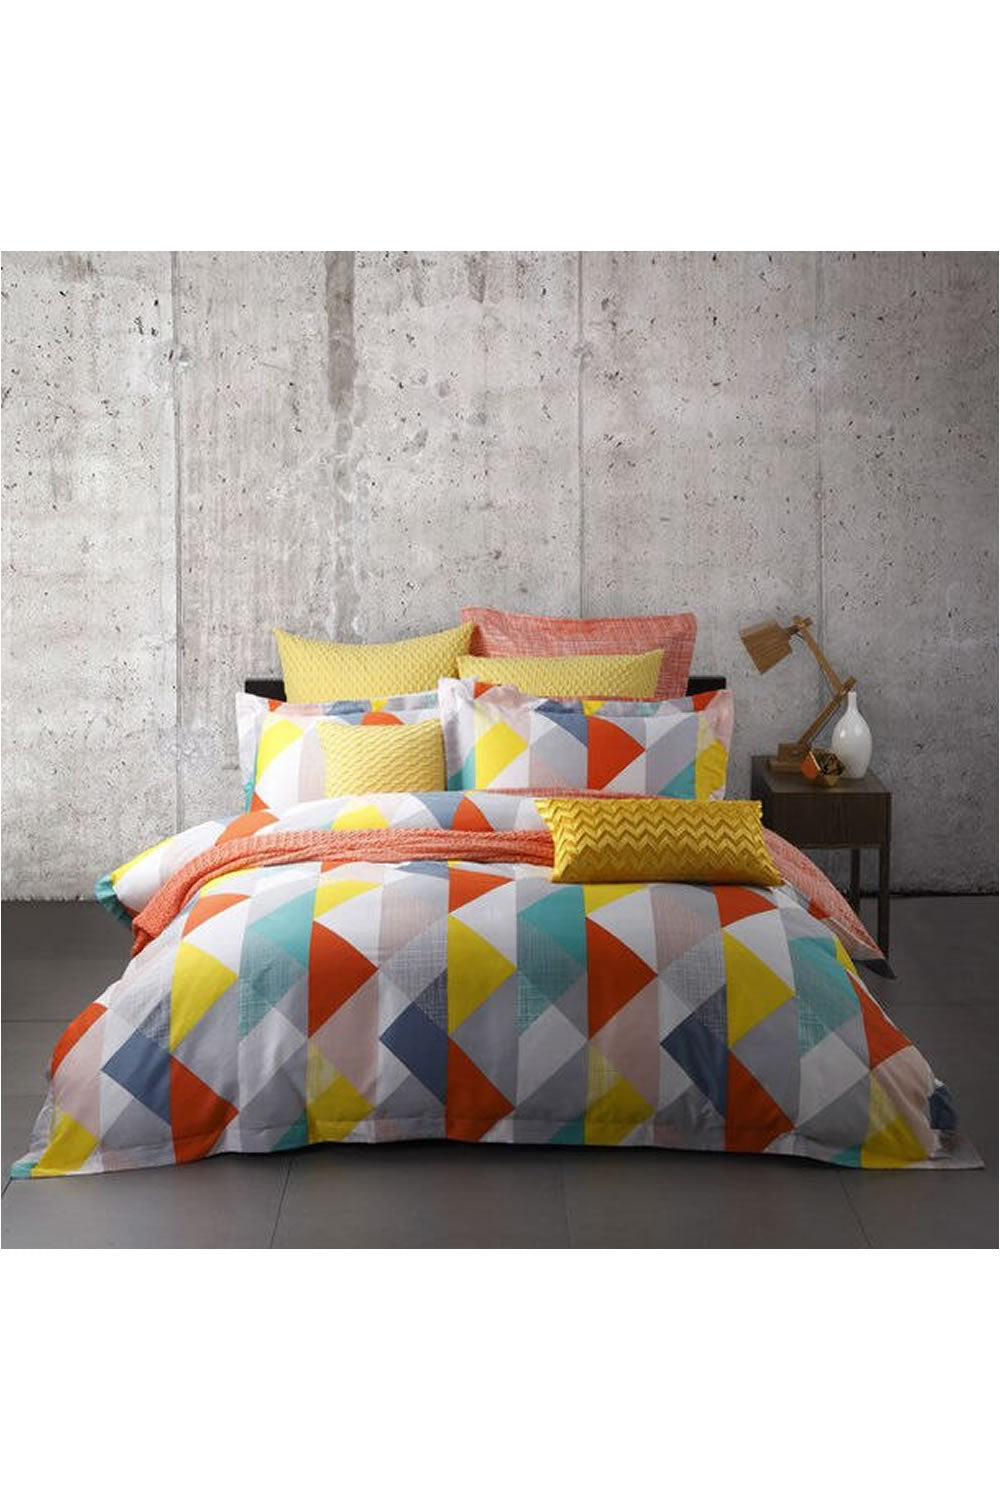 Logan and Mason Lloyd Quilt Cover Set